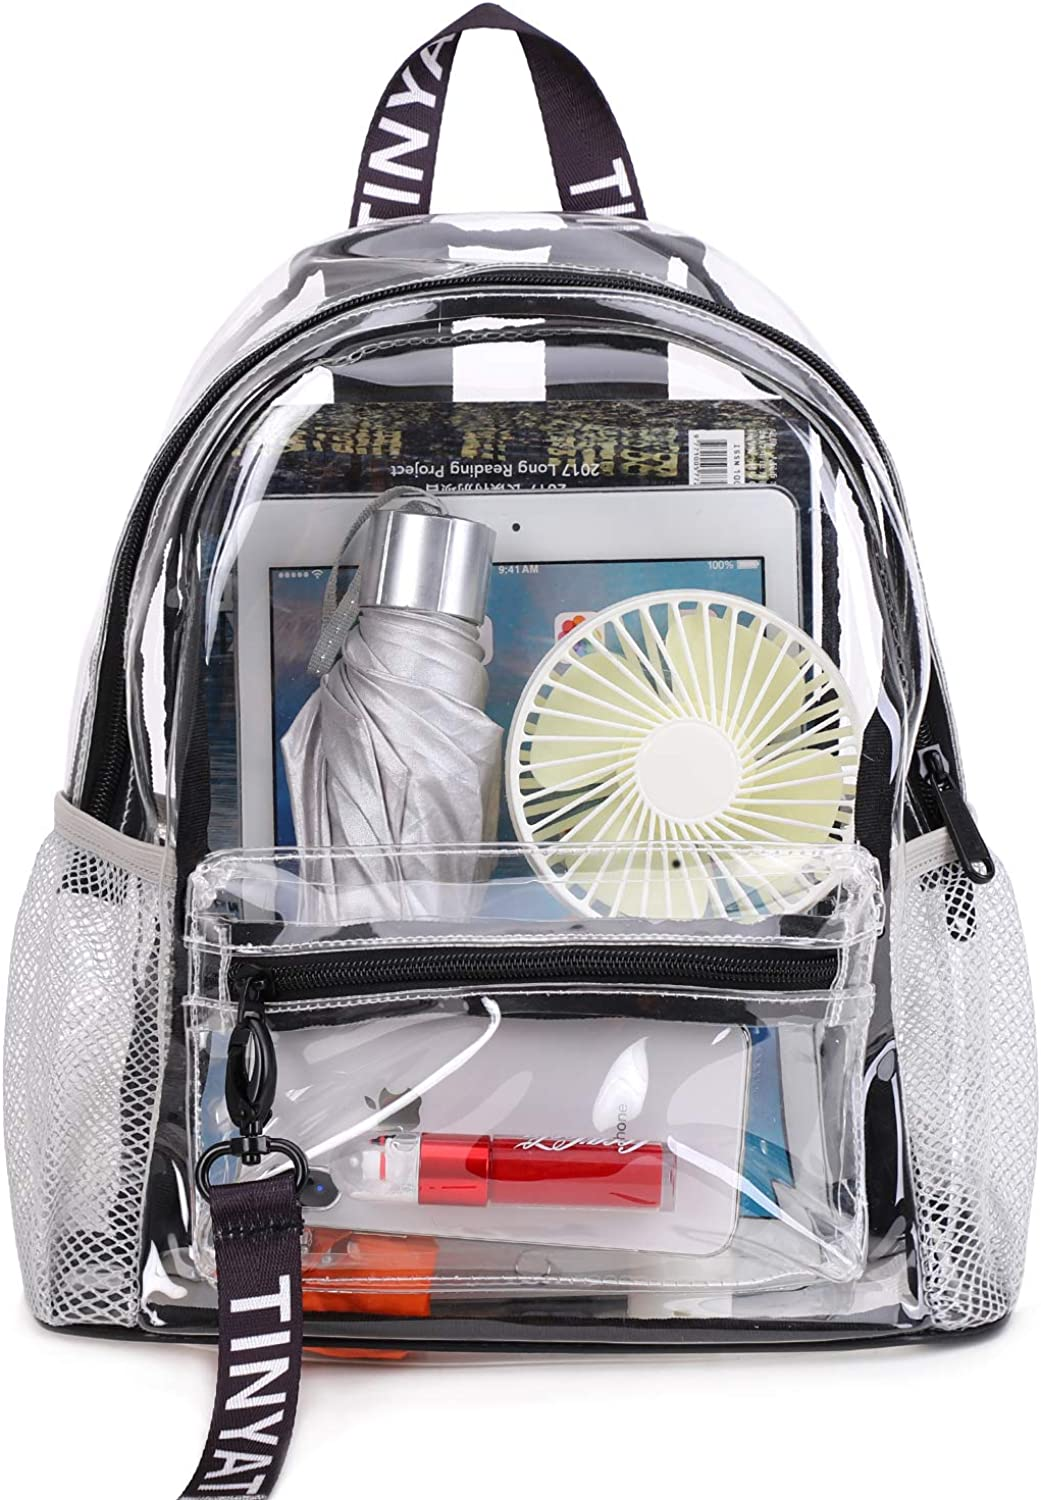 Heavy Duty Transparent Clear backpack,TINYAT See Through Clear Bag for School, Concerts, Sports, Travel and Daily Use